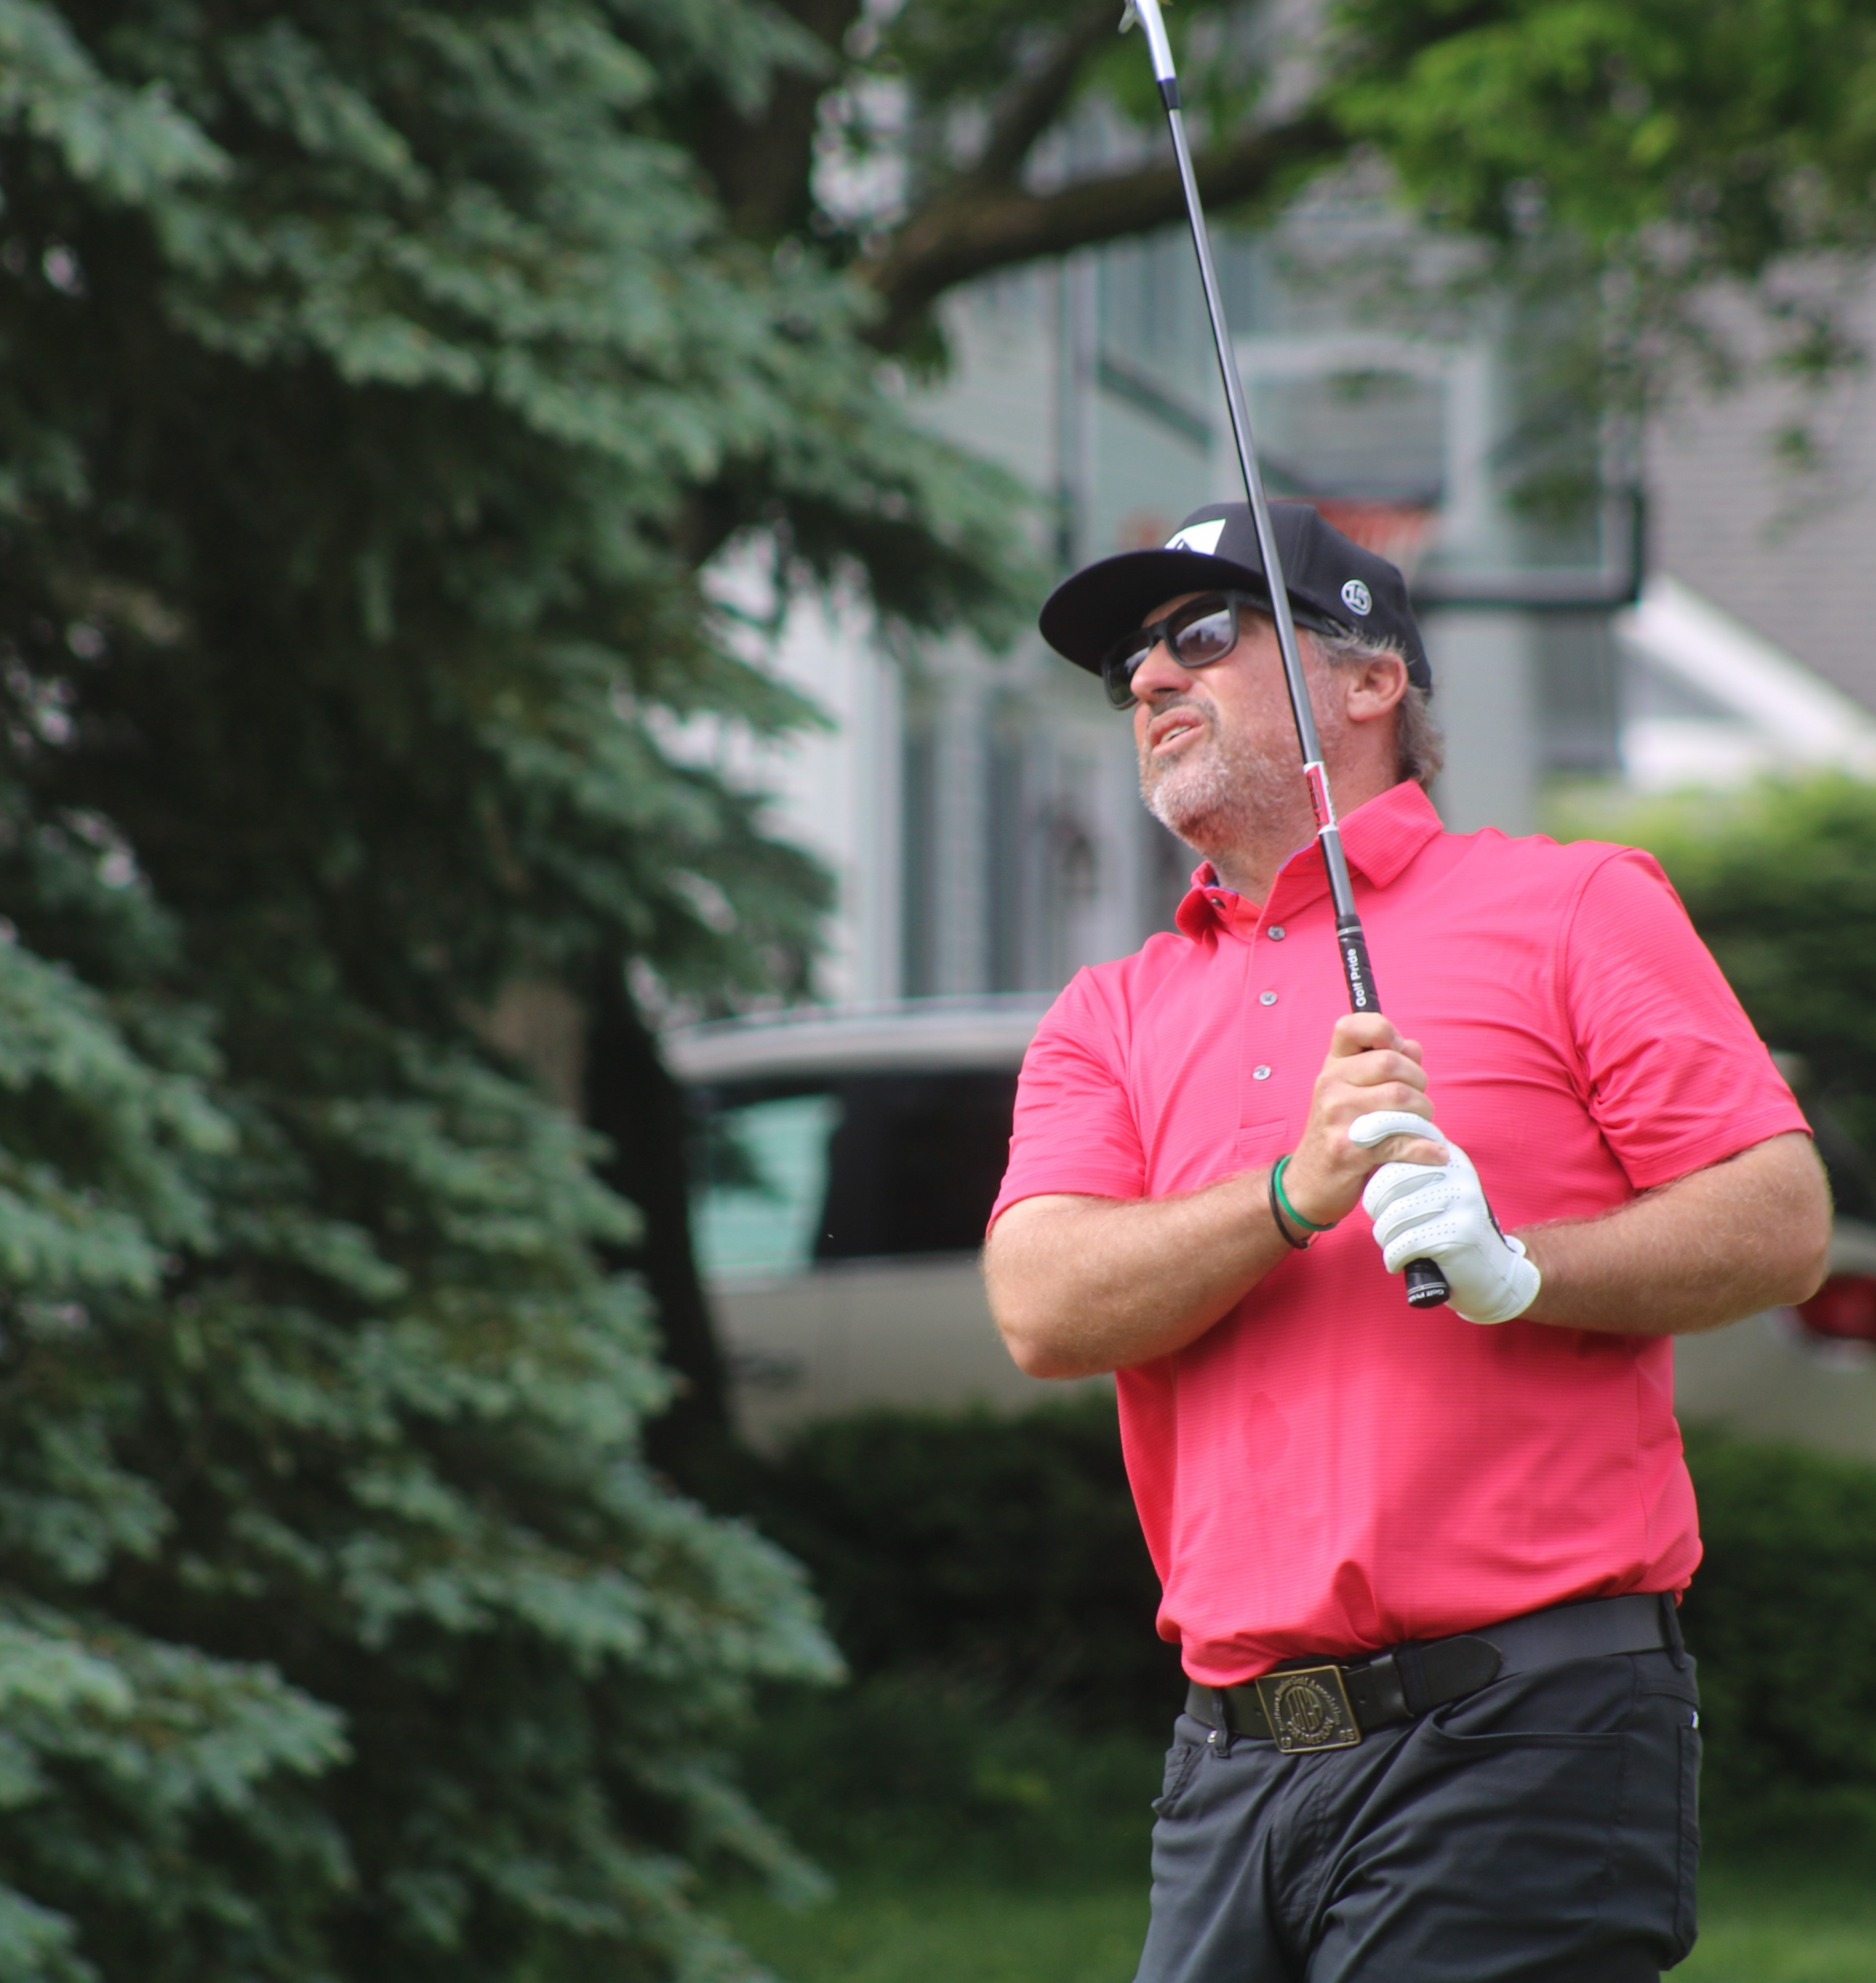 Chris Smith, PGA Wins 2018 Indianapolis Open in Playoff